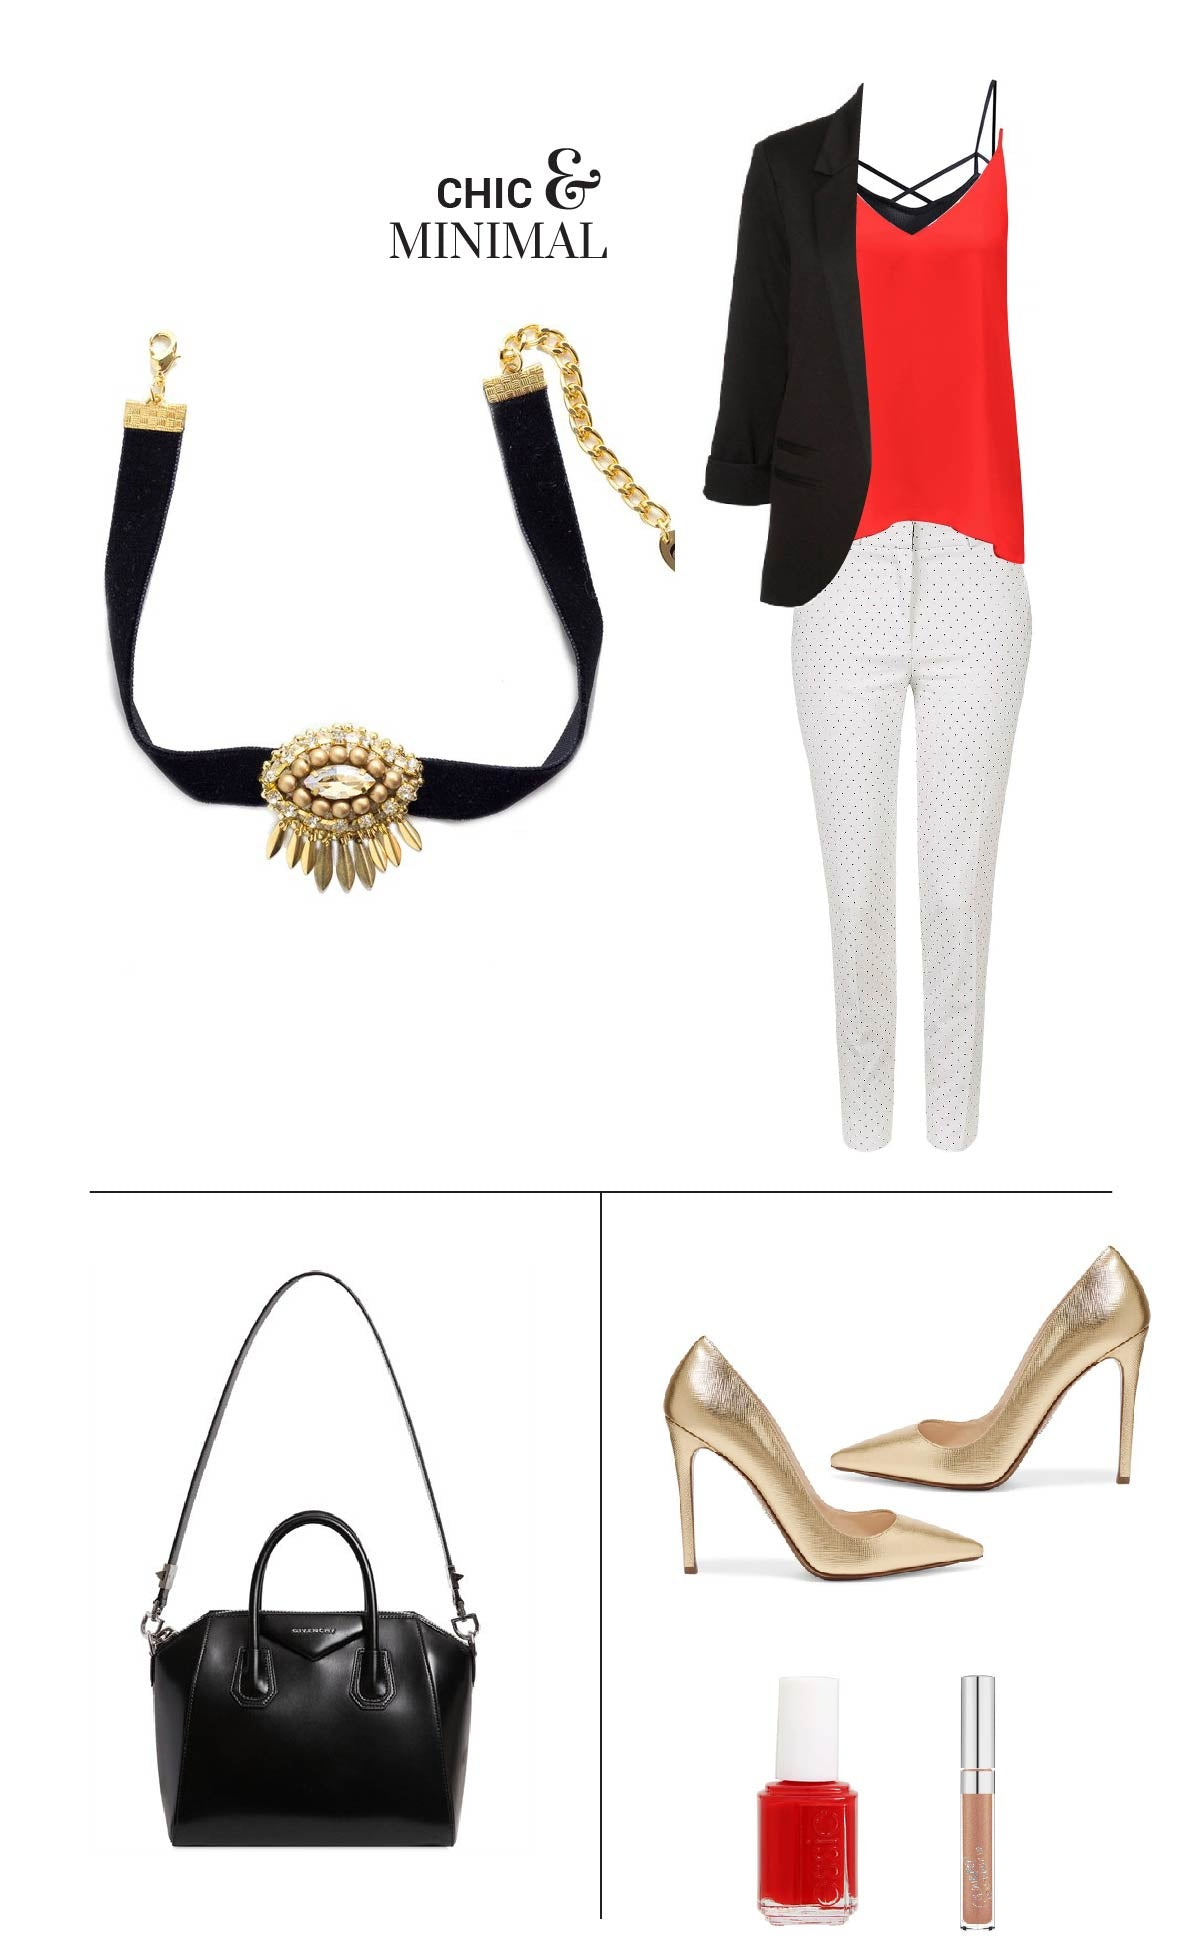 How to style a choker necklace - Combine this choker necklace with your outfit to match your chic and minimal style!